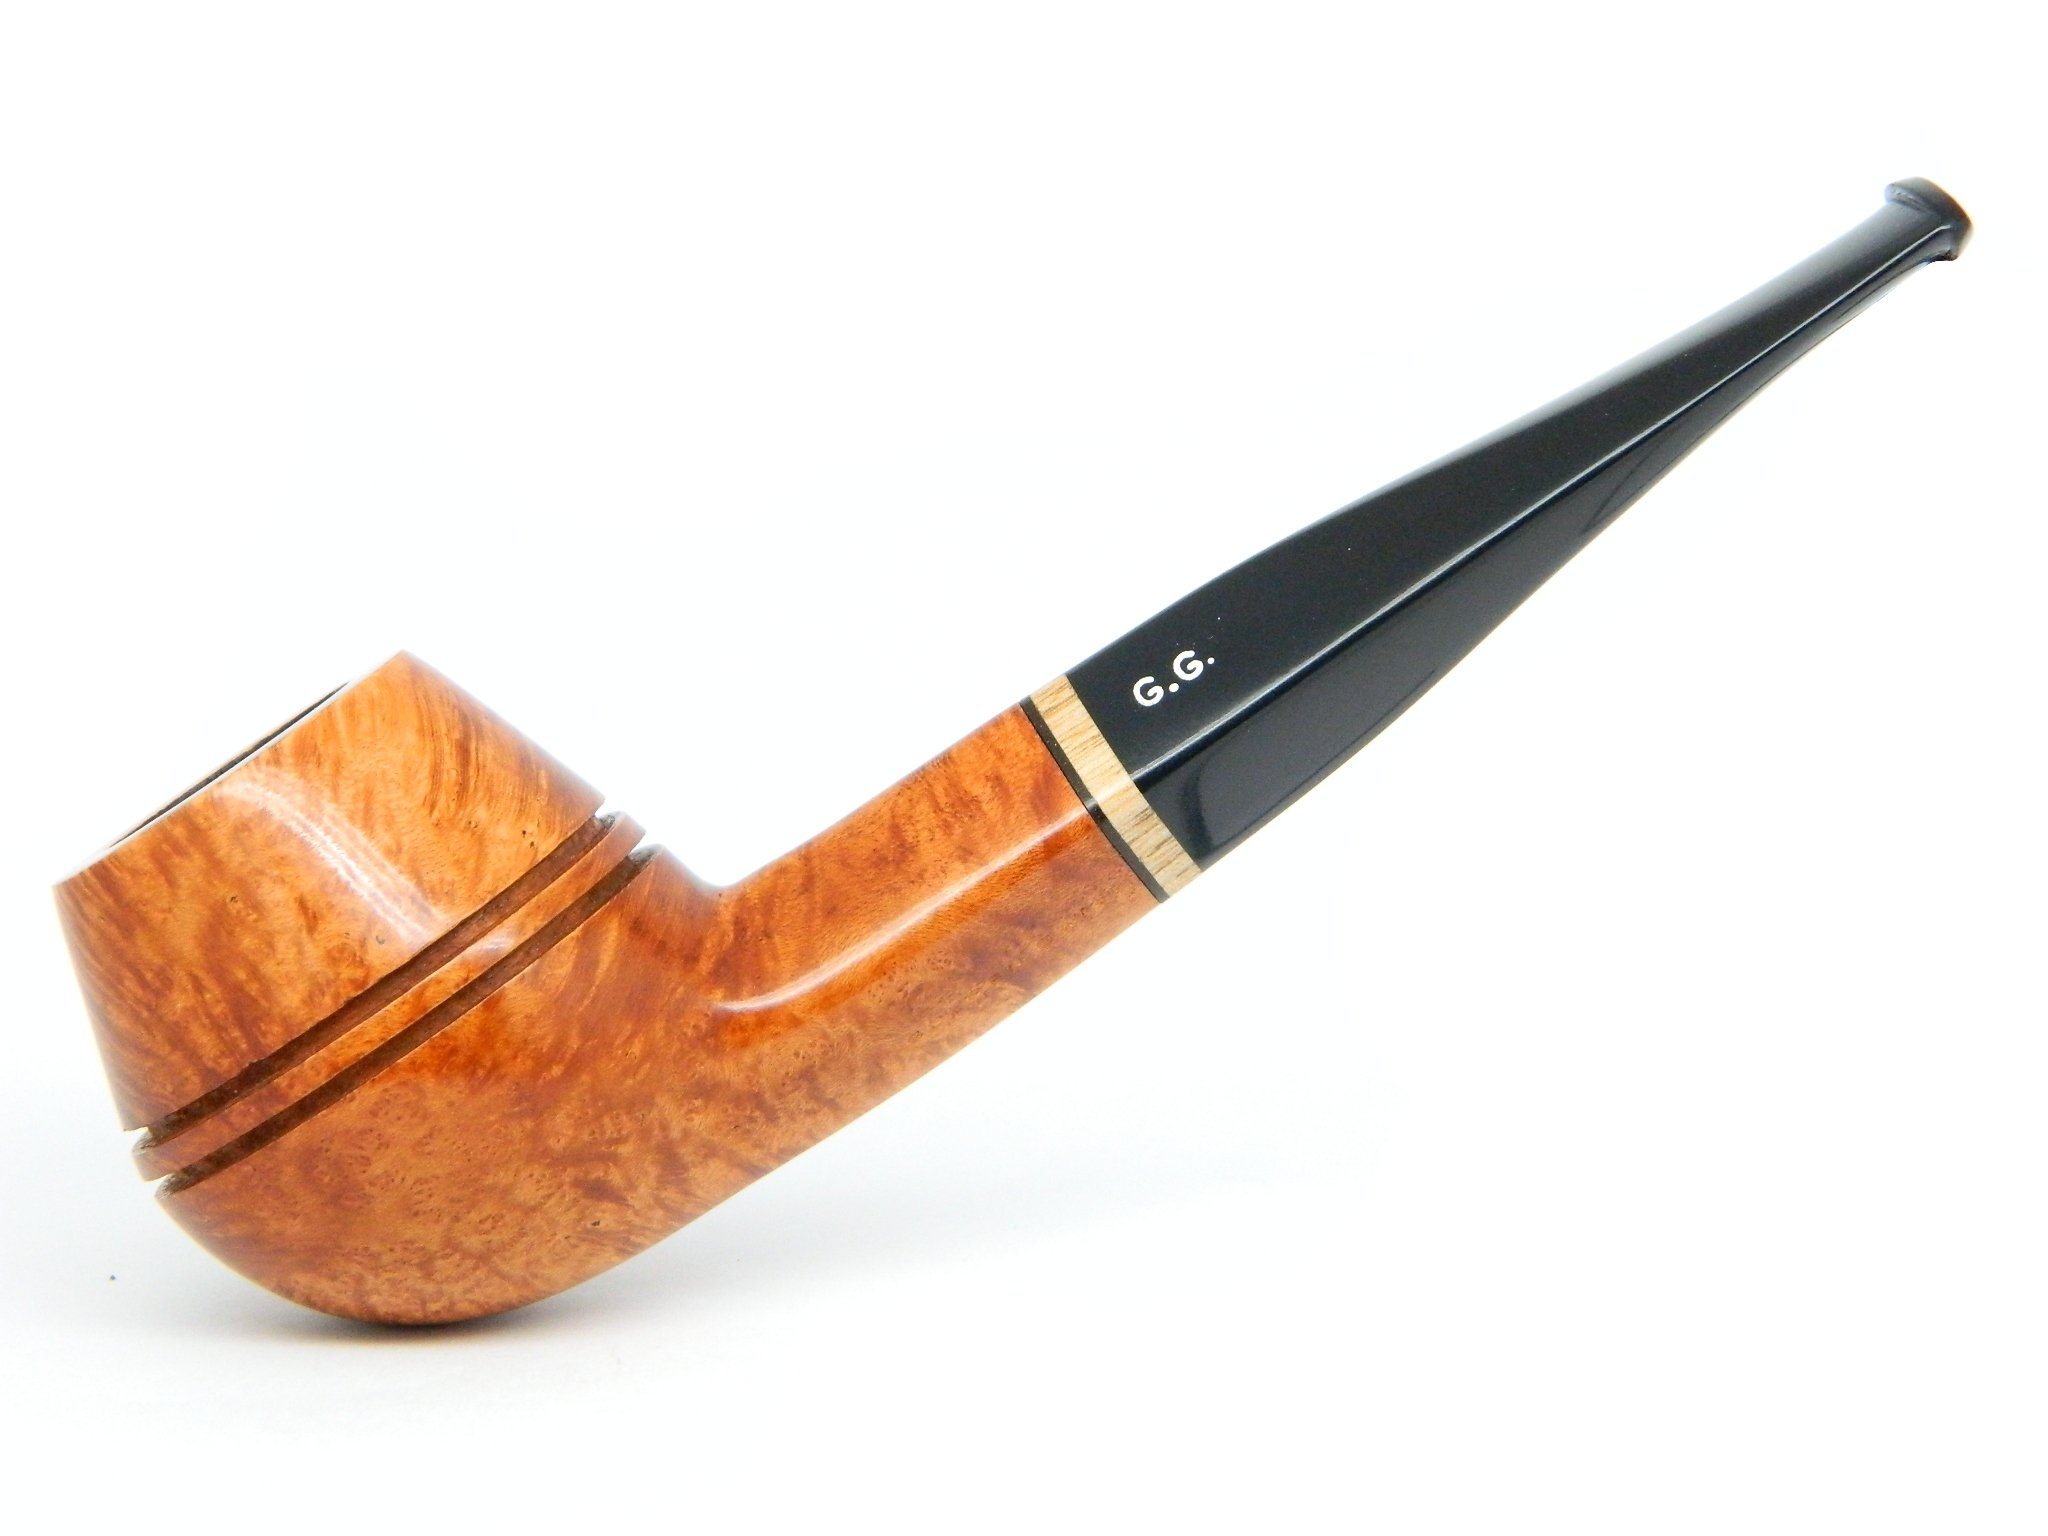 Watson&G.G. - BRIAR Tobacco Smoking pipe - Bulldog - Hand Made, Smooth ( 9mm filter) + Branded Pouch (special edition for Watson) (Gold)